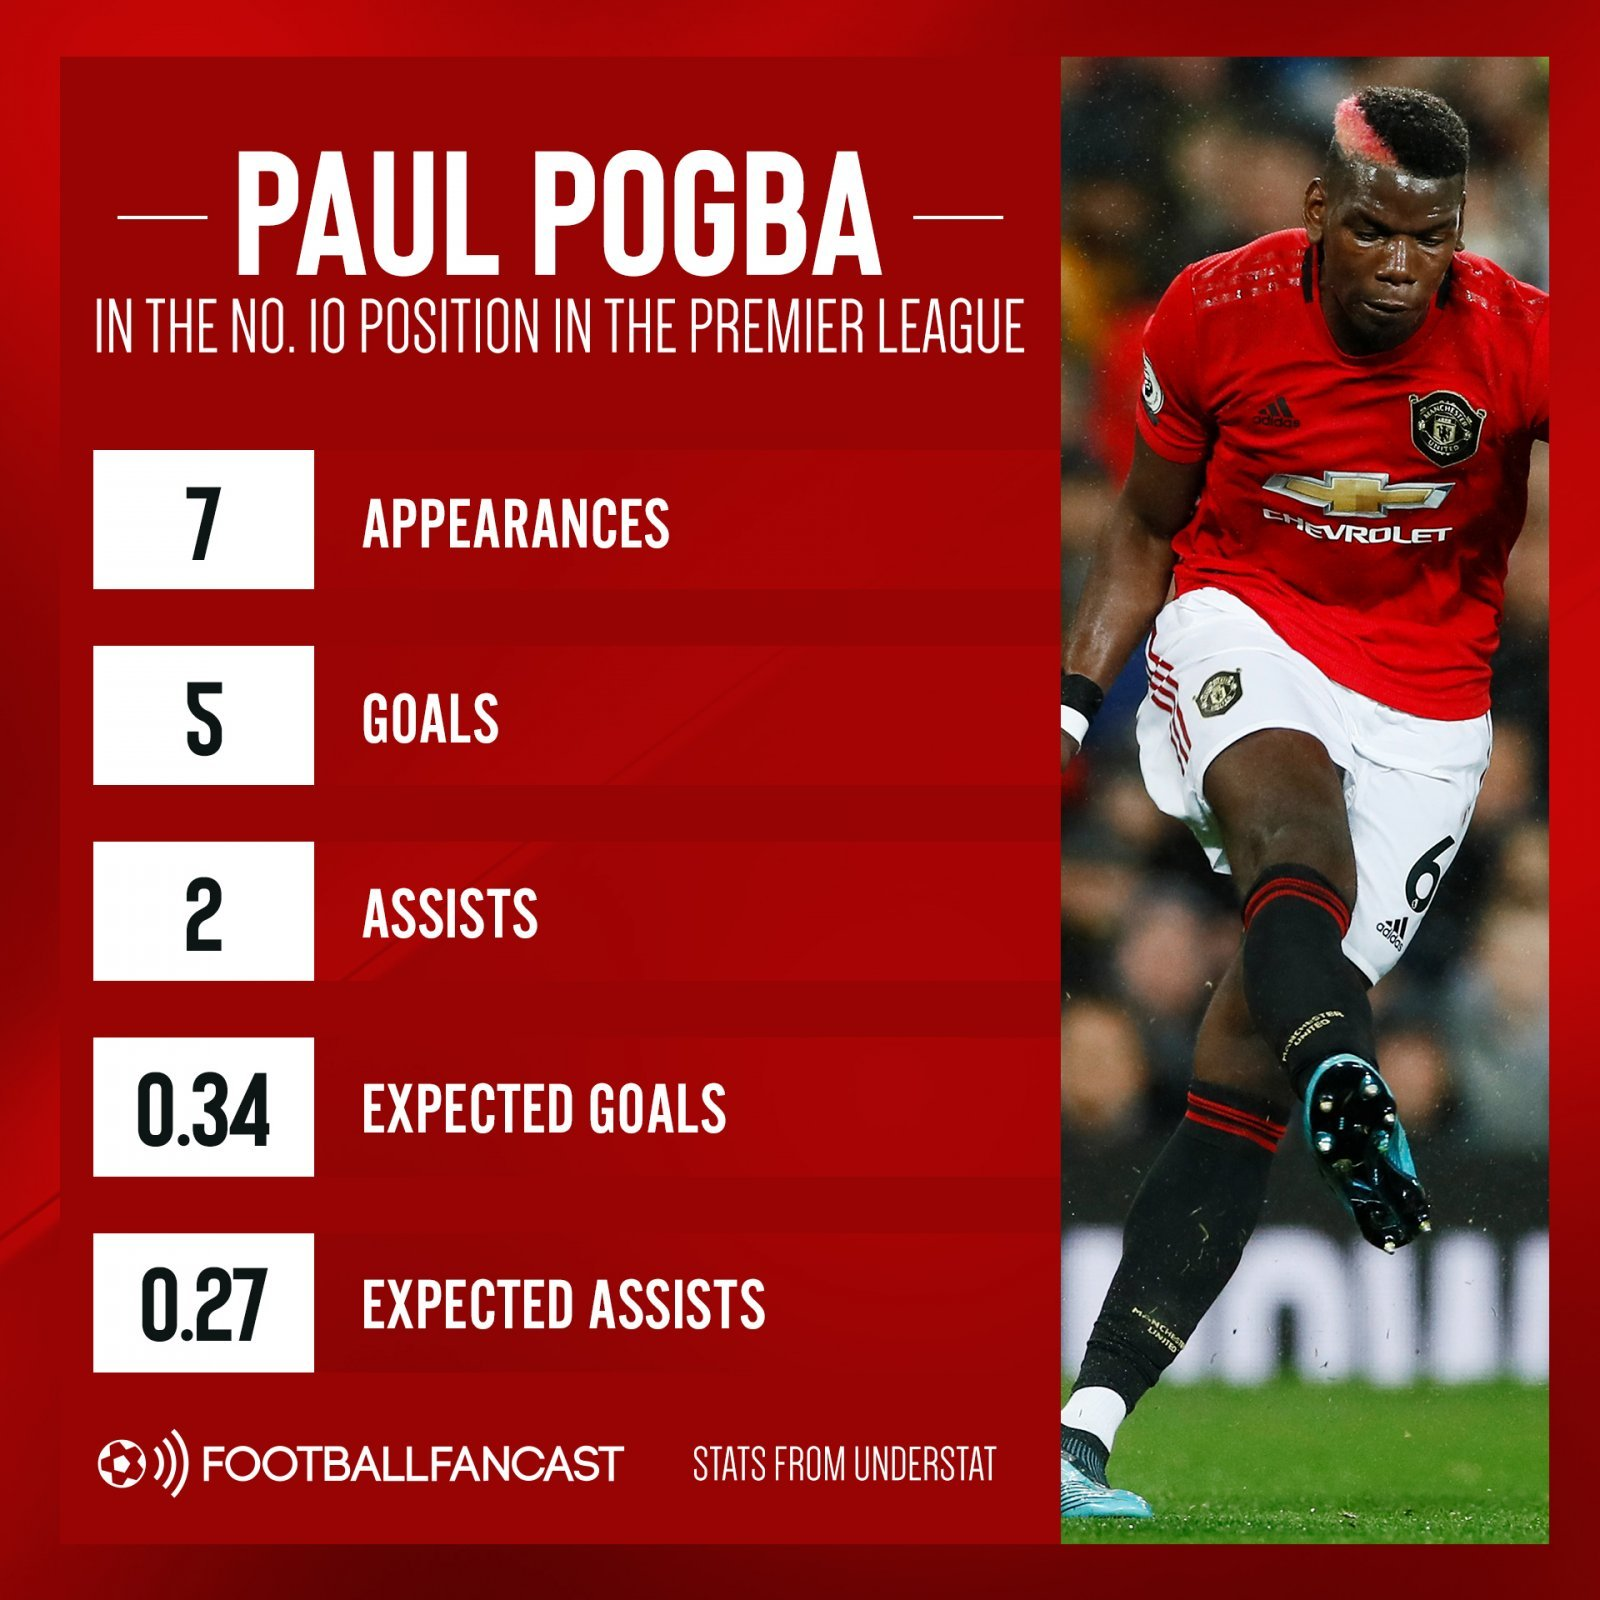 Paul Pogba in the no.10 position in the Premier League